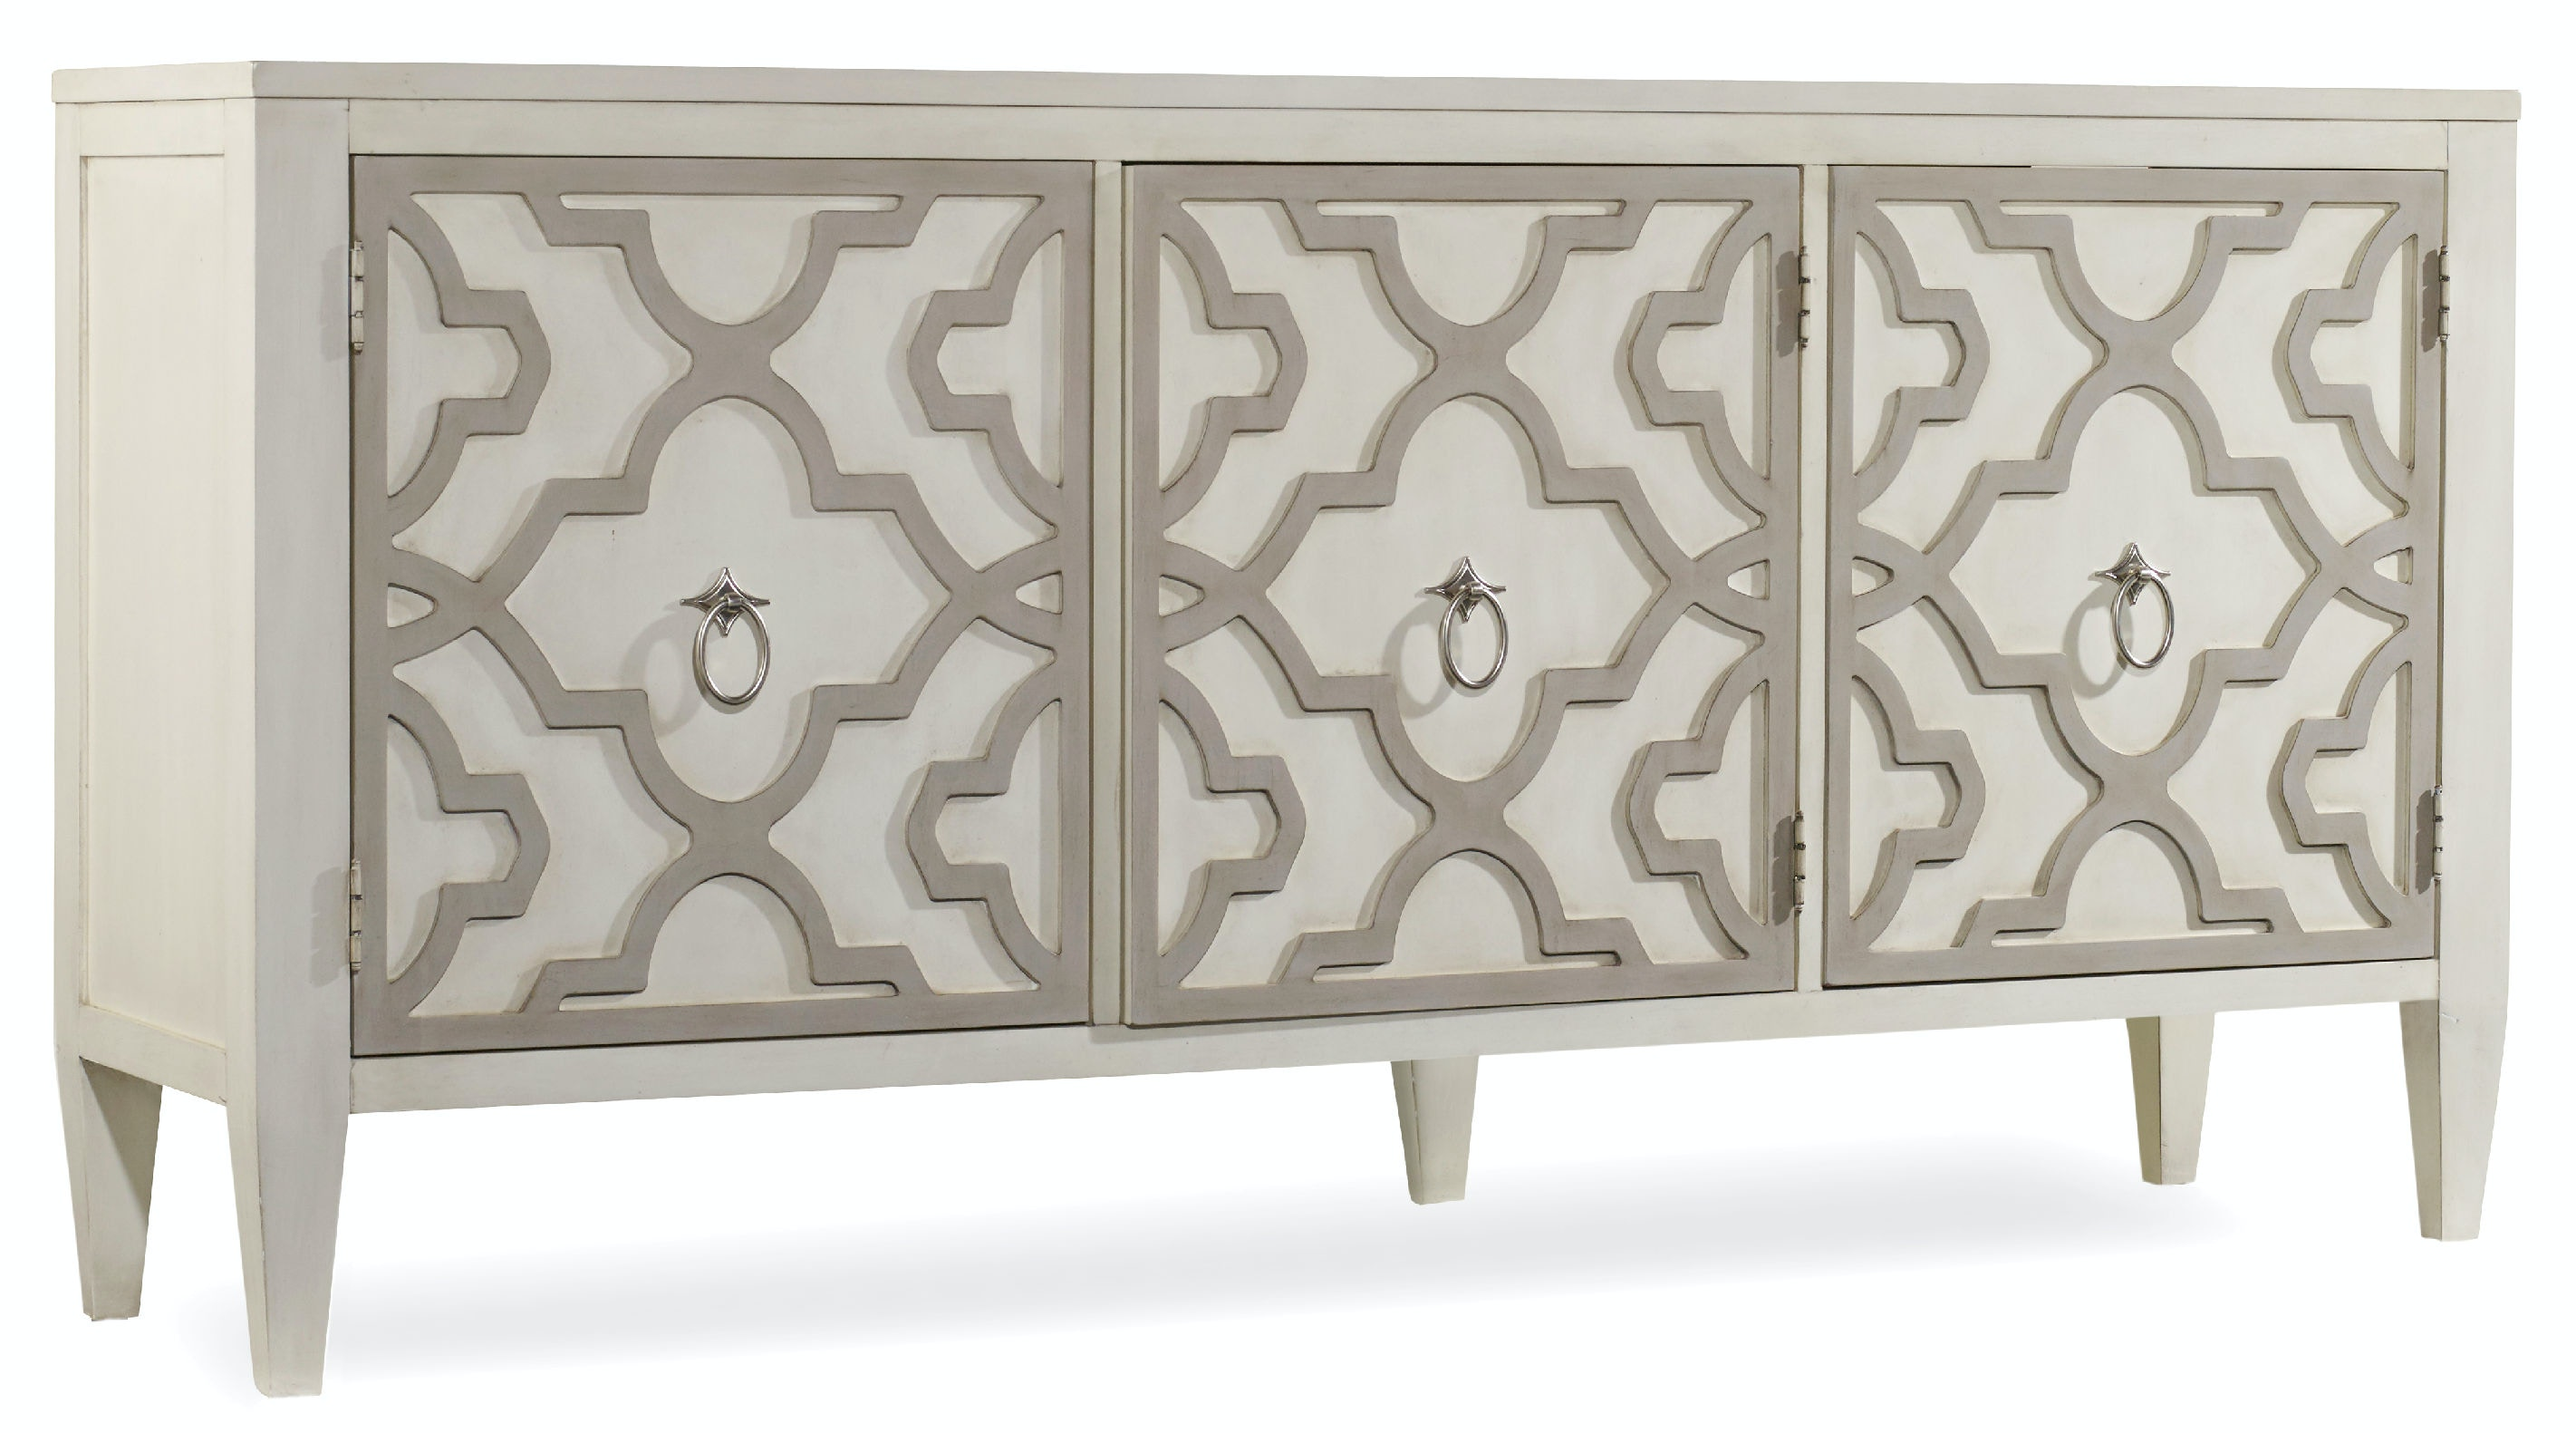 Hooker Furniture Melange Miranda Credenza 638 85189Livingston Furniture   Tampa Fine Furniture and AccessoriesHooker  . Livingston Furniture. Home Design Ideas